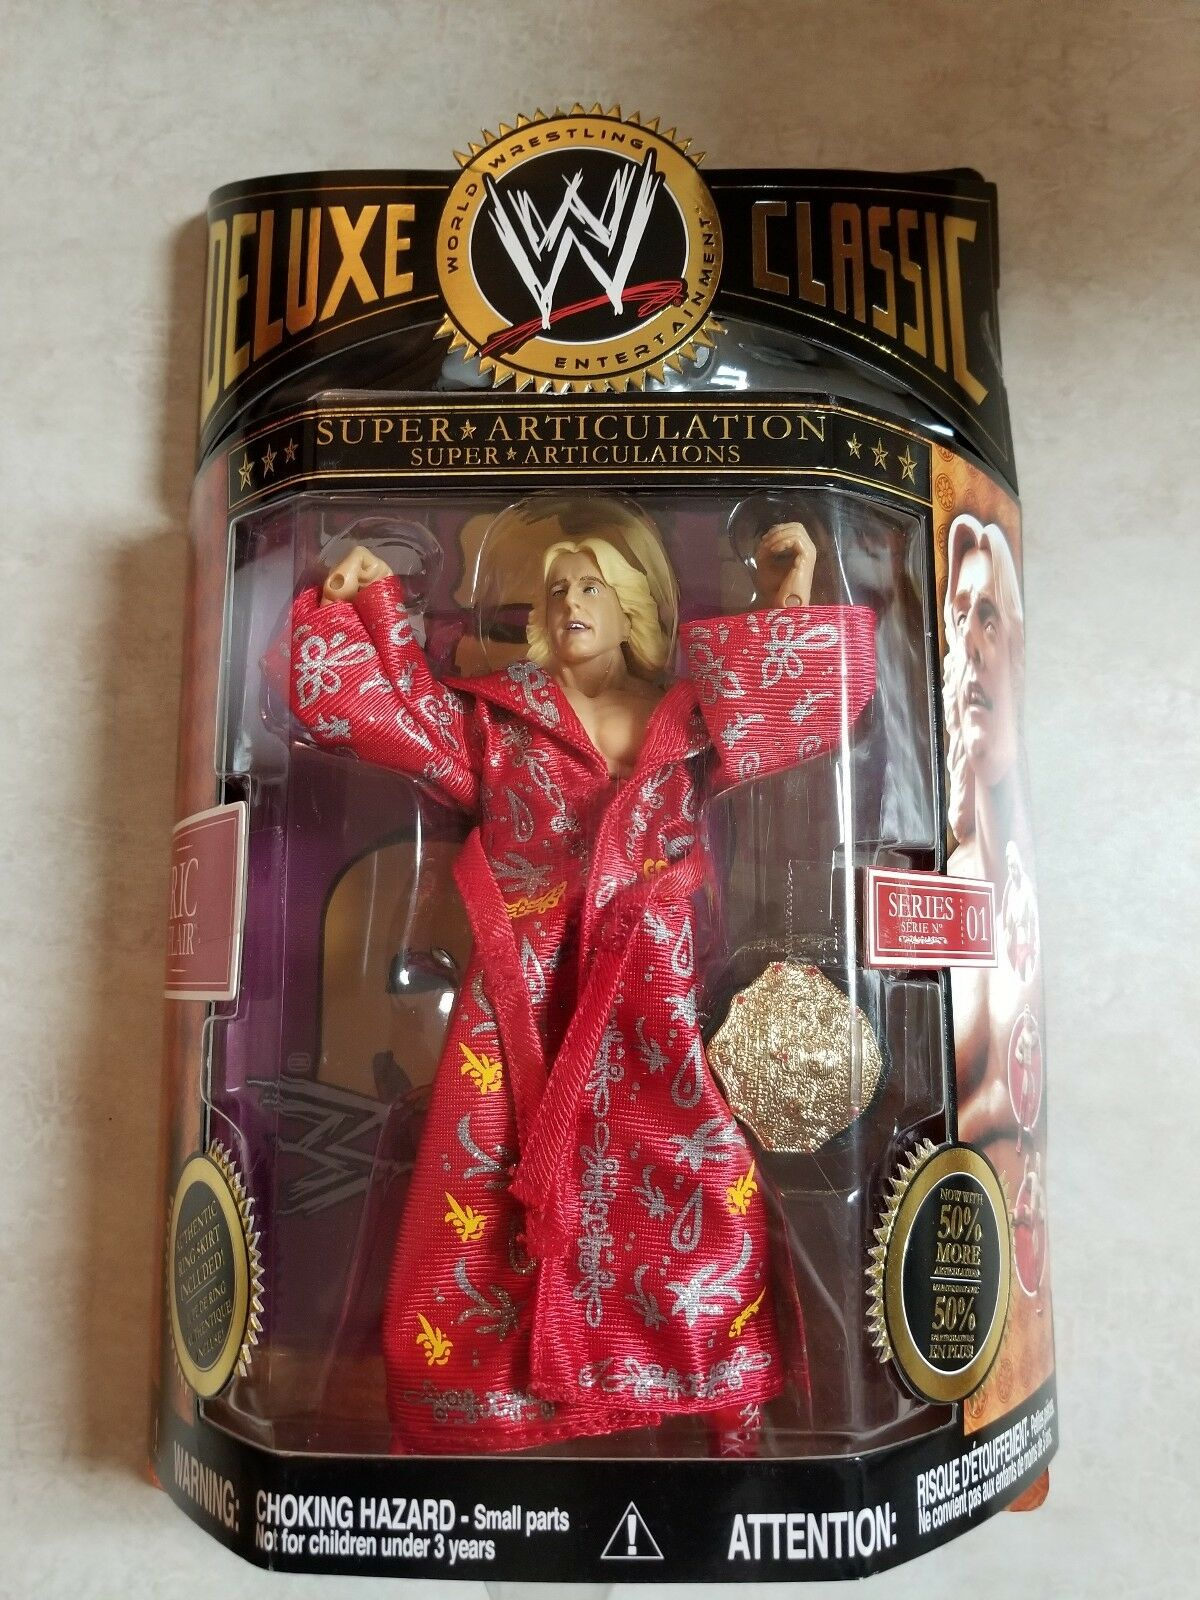 WWE DELUXE CLASSIC SUPER ARTICULATION RIC FLAIR SERIES 01